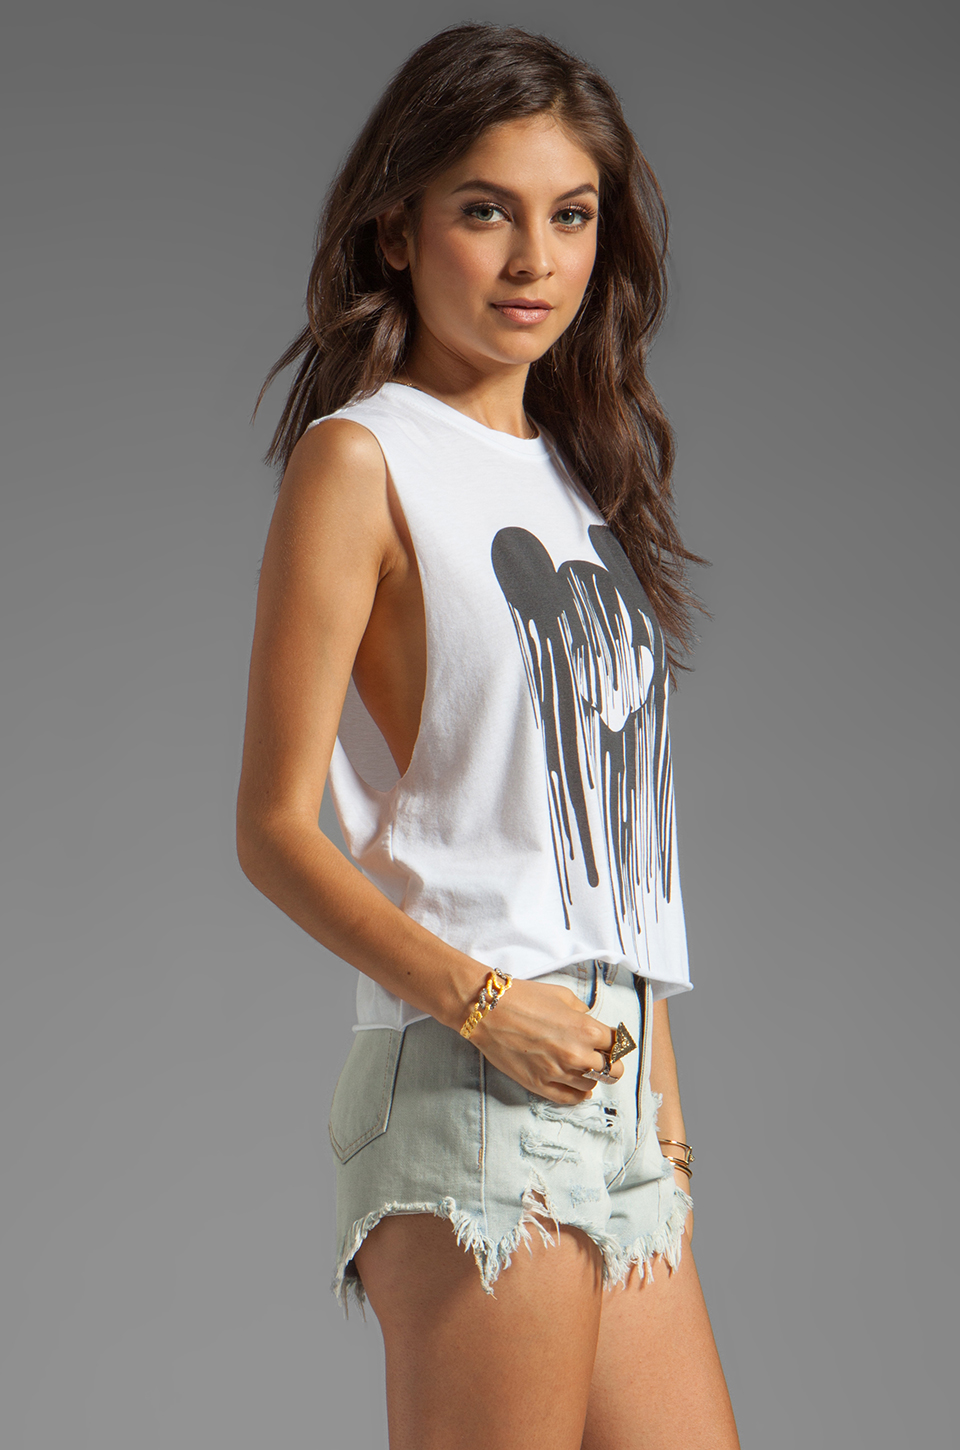 The Laundry Room Mickey Drip Crop Muscle Tee in White